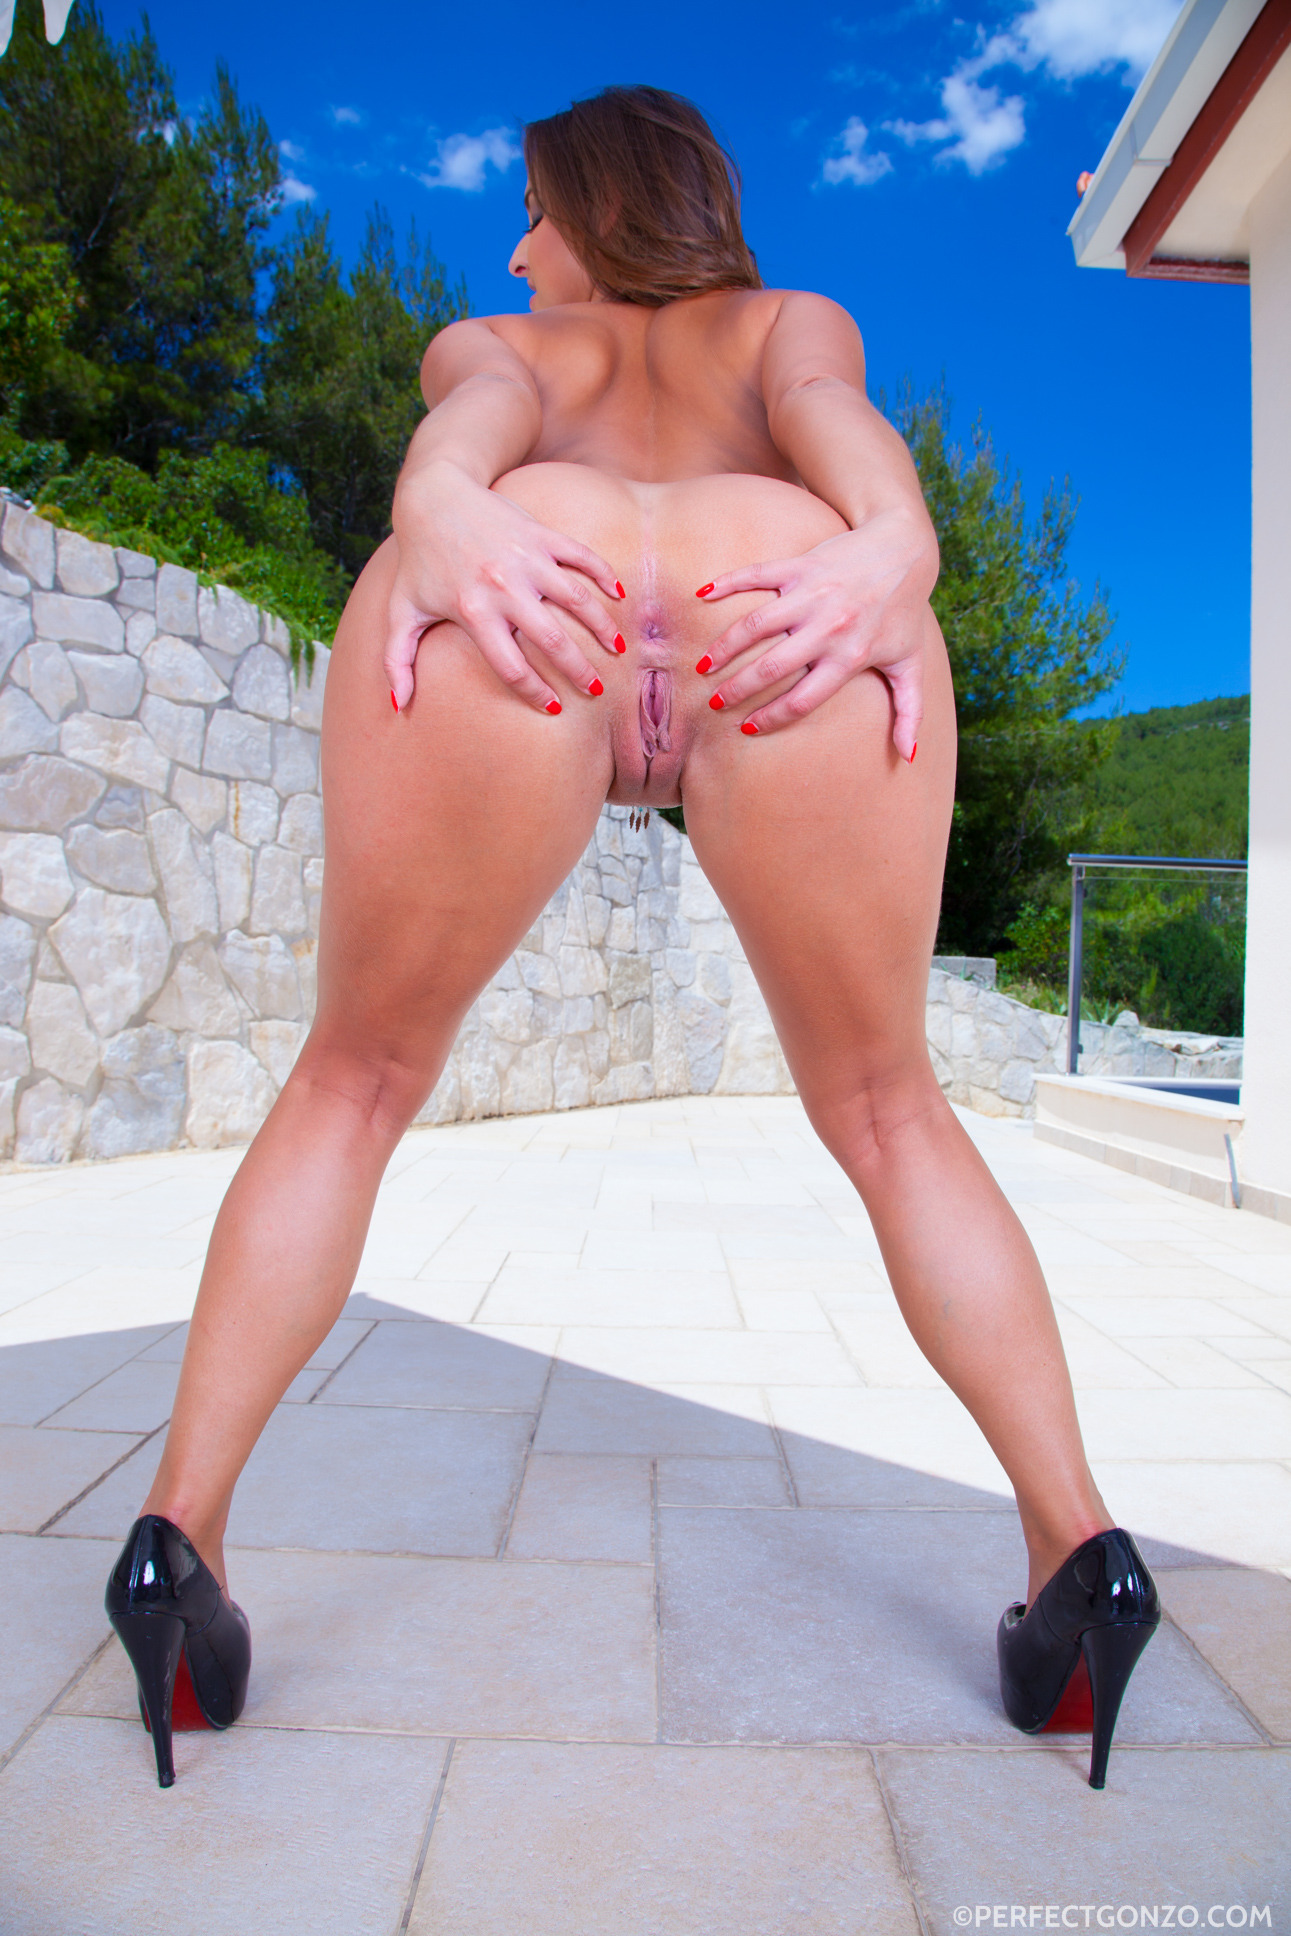 Ass traffic she swallows their cum greedily after they fuck her